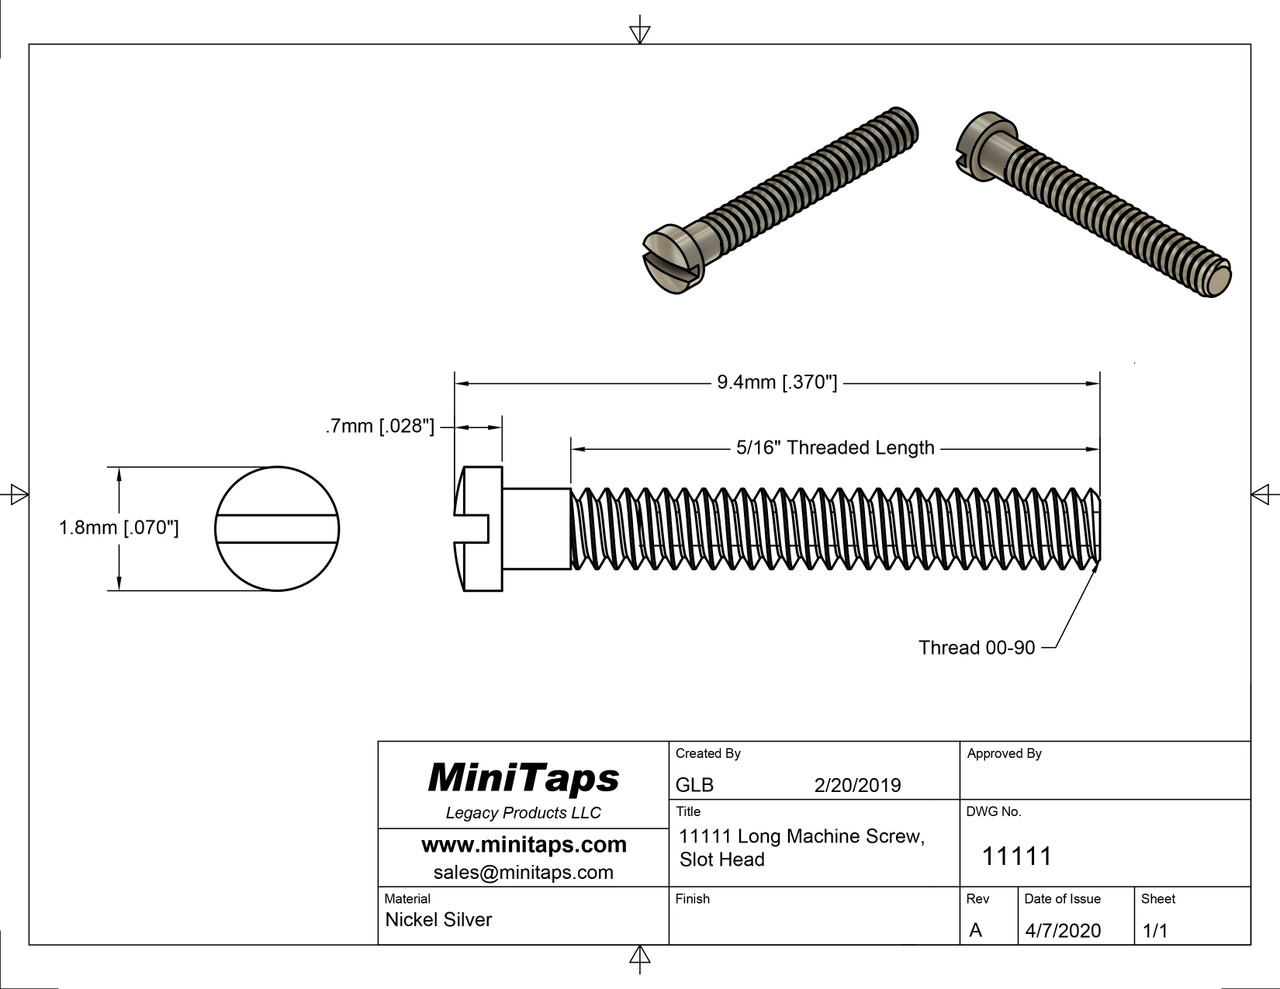 """Slot Head Machine Screw Thread 00-90 (0.046""""/1.17mm) Overall Length (OAL) 9.4mm Threaded Length 5/16"""" Head Diameter  2.0mm Material: Nickel Silver, a premium copper alloy resistant to tarnish and often used in jewelry and eyewear. Part Finish Color is Gold"""